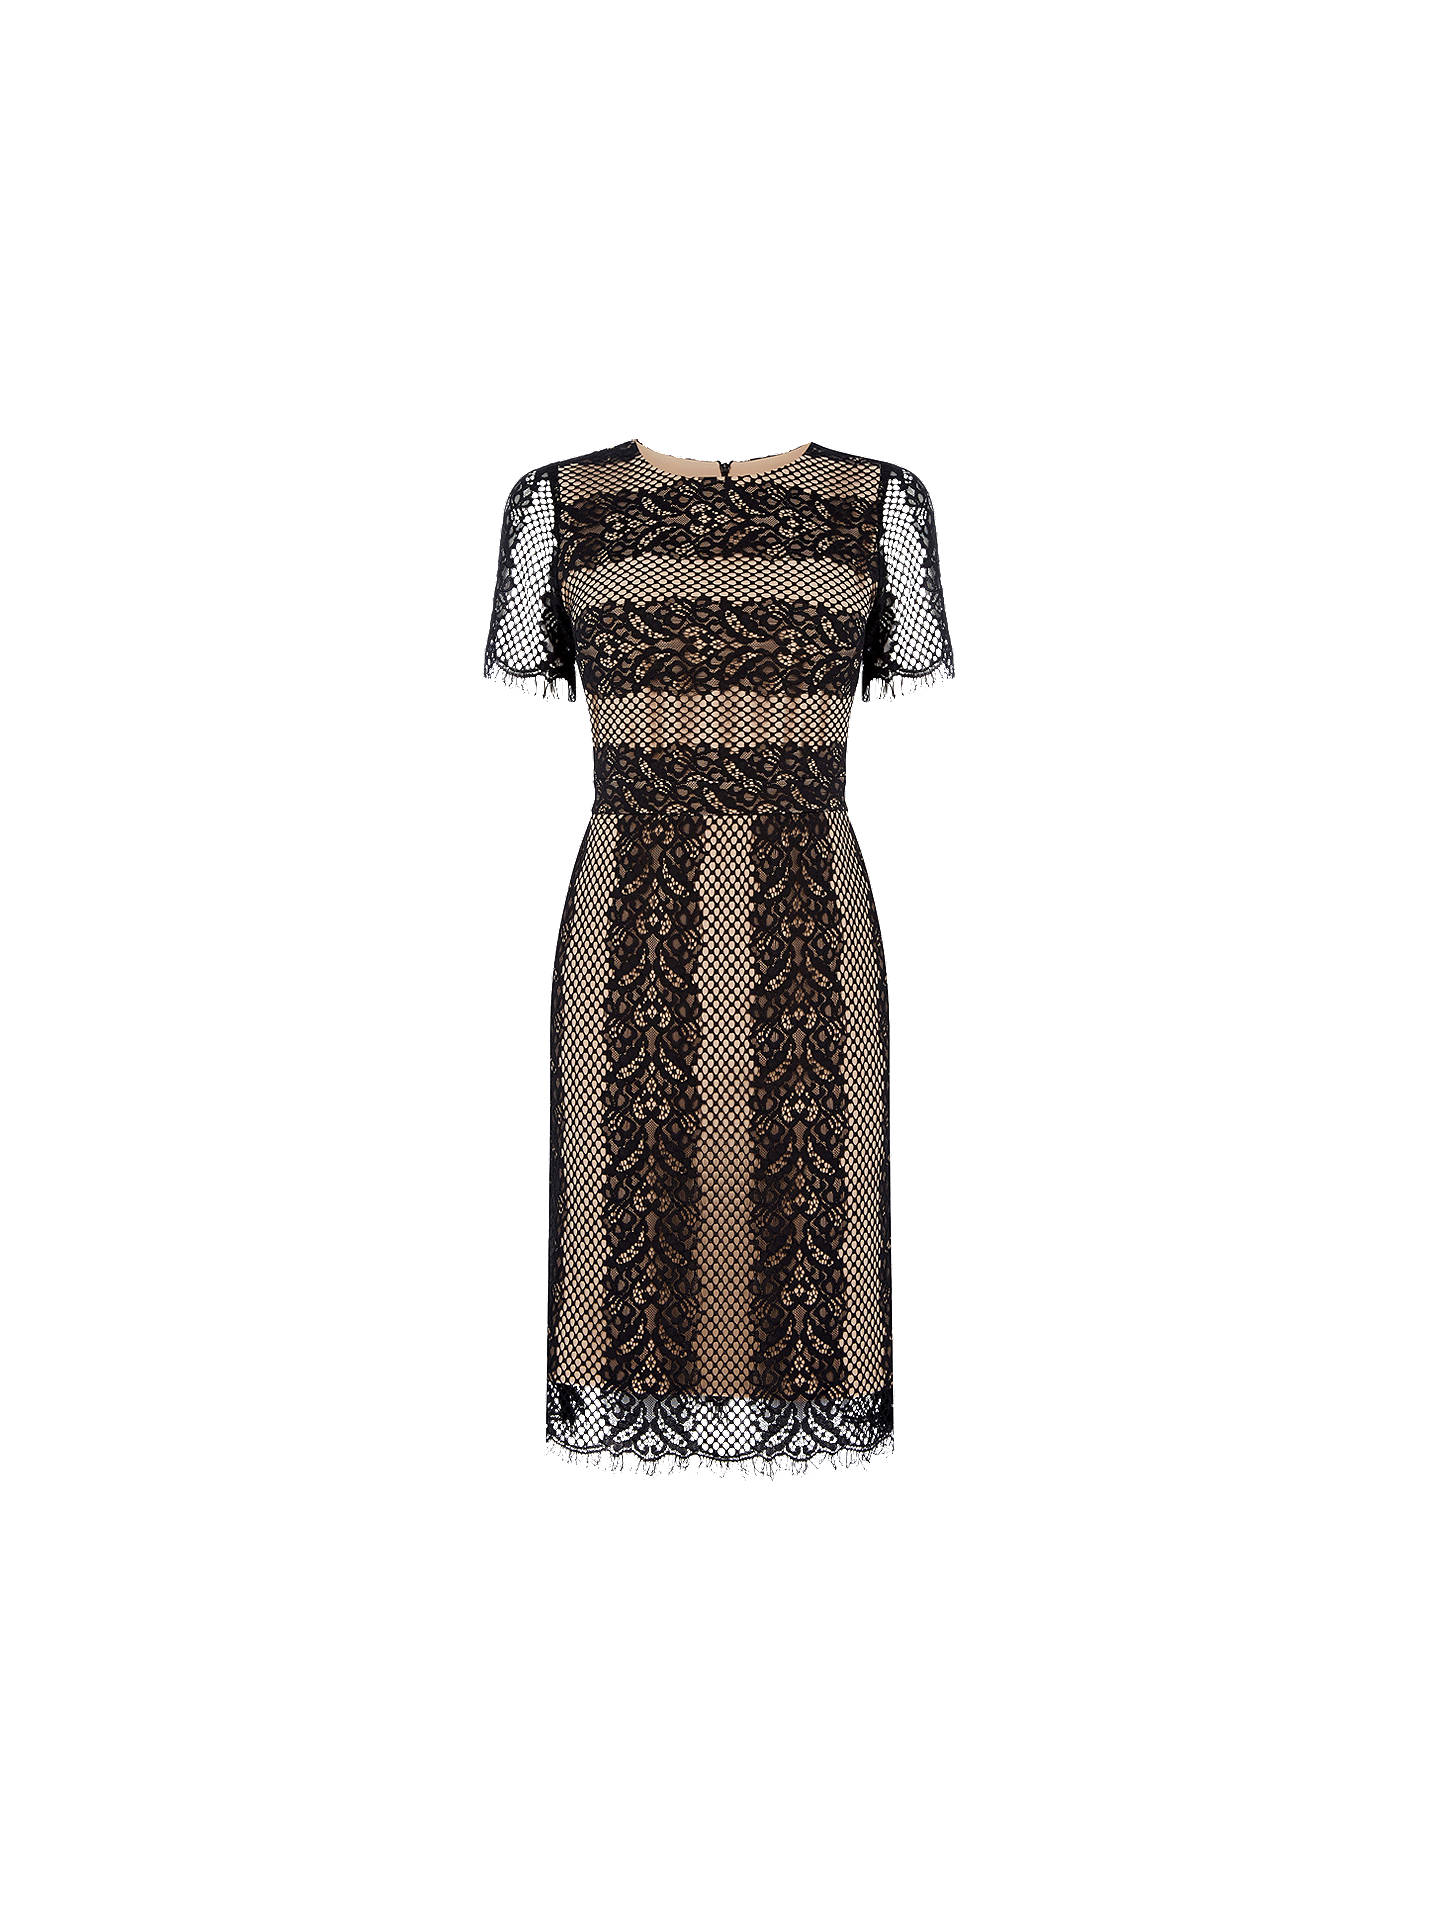 9430760db572 Buy Oasis Striped Lace Dress, Multi/Black, 8 Online at johnlewis.com ...